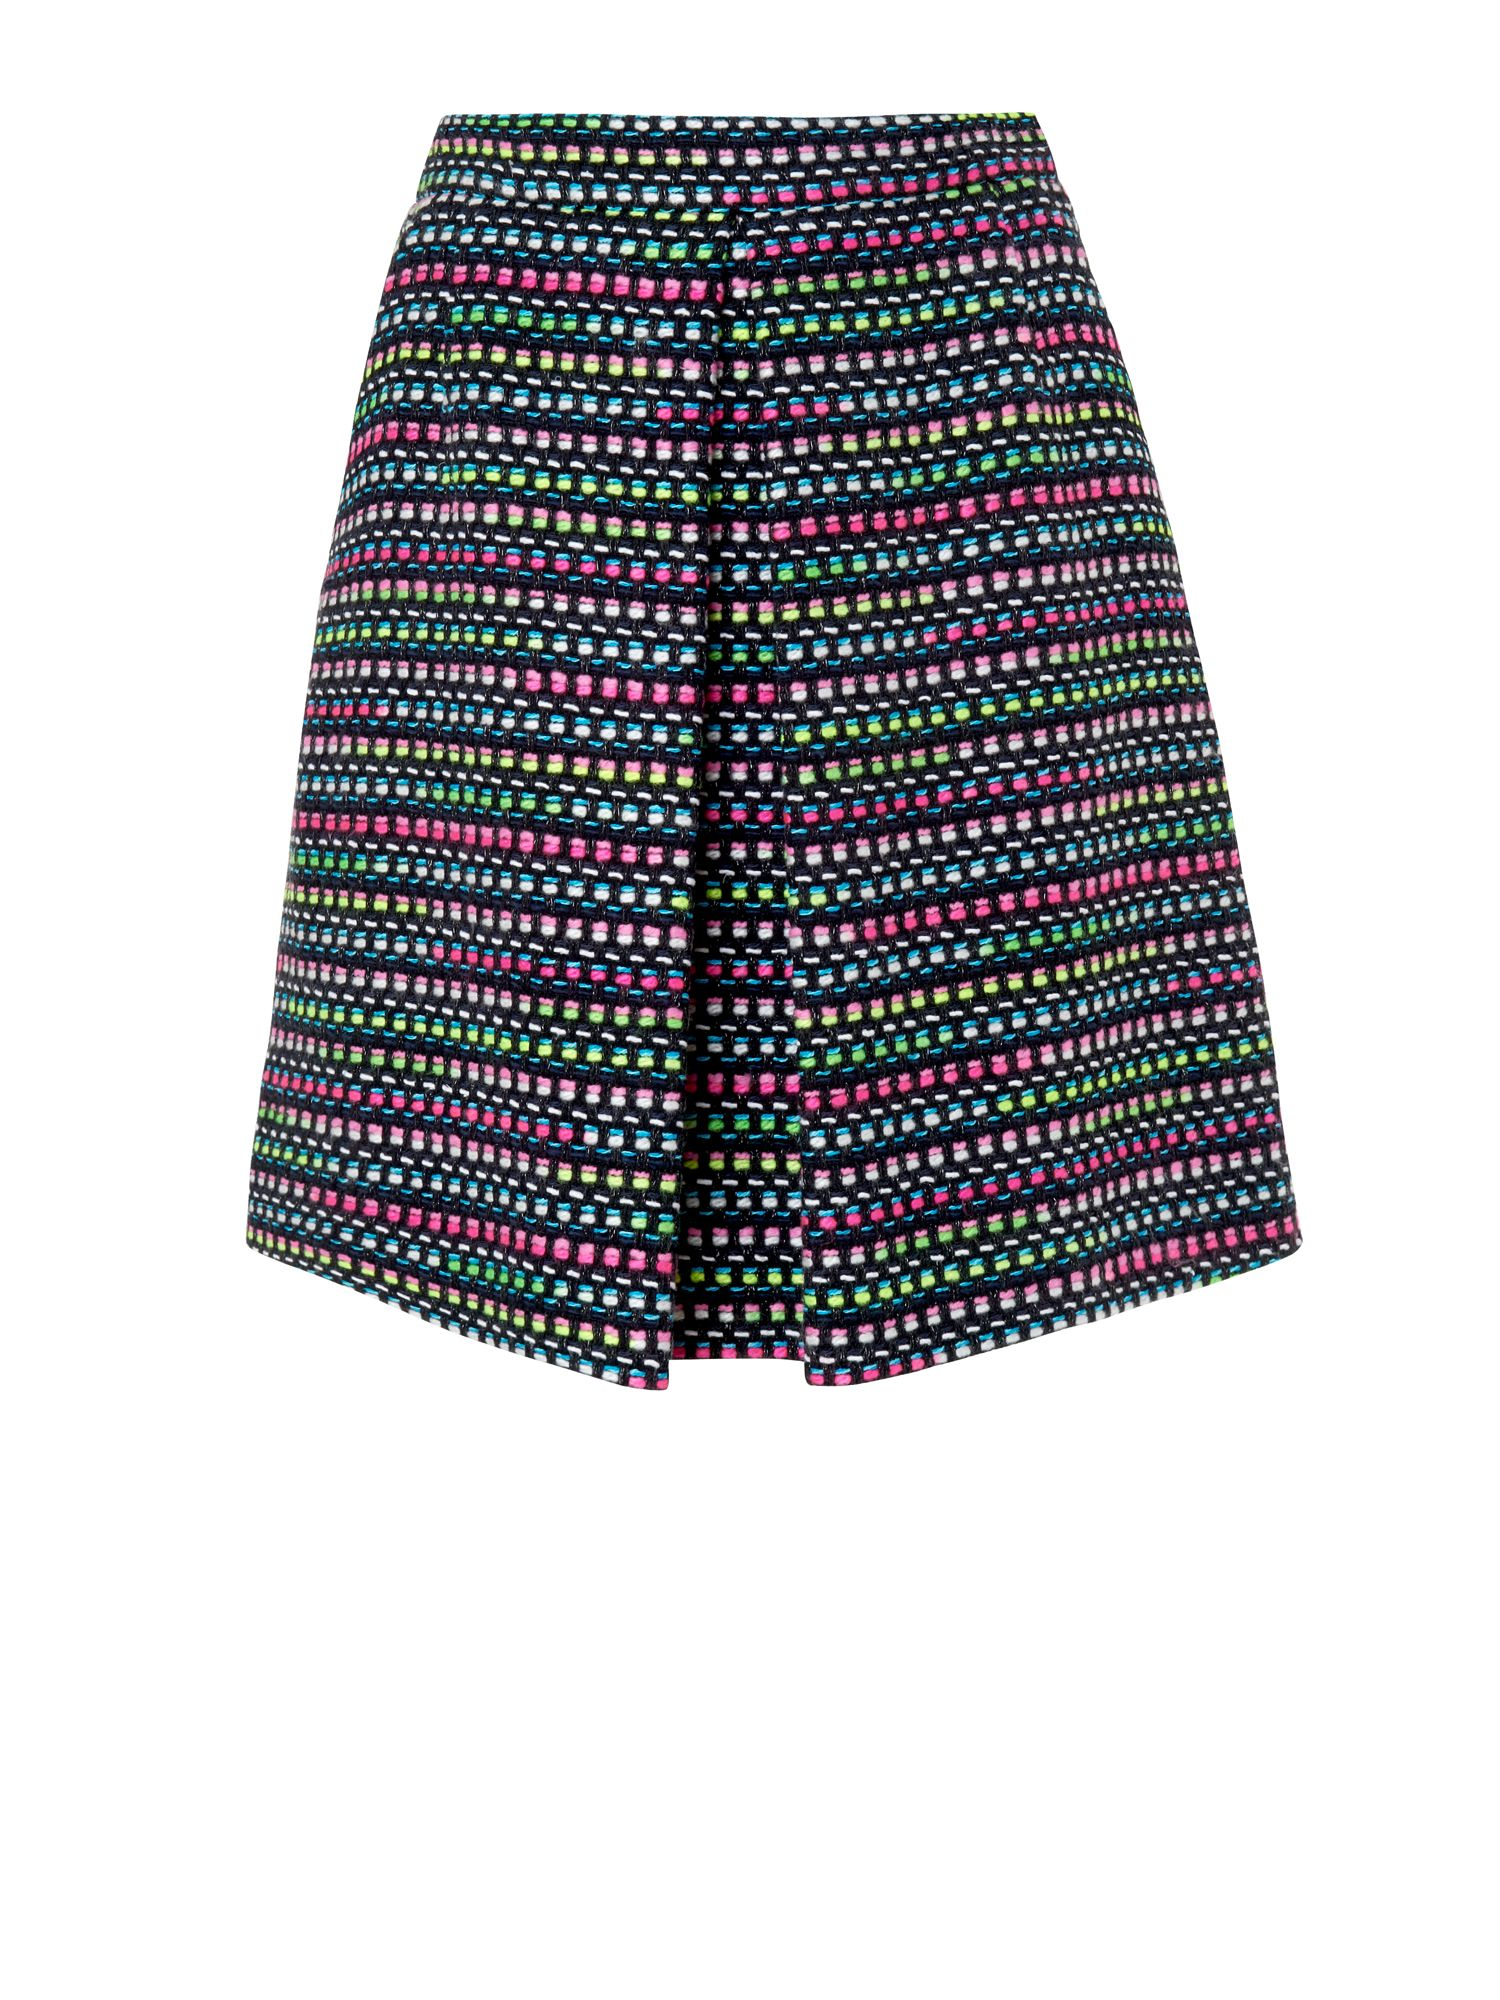 Centre pleat skirt